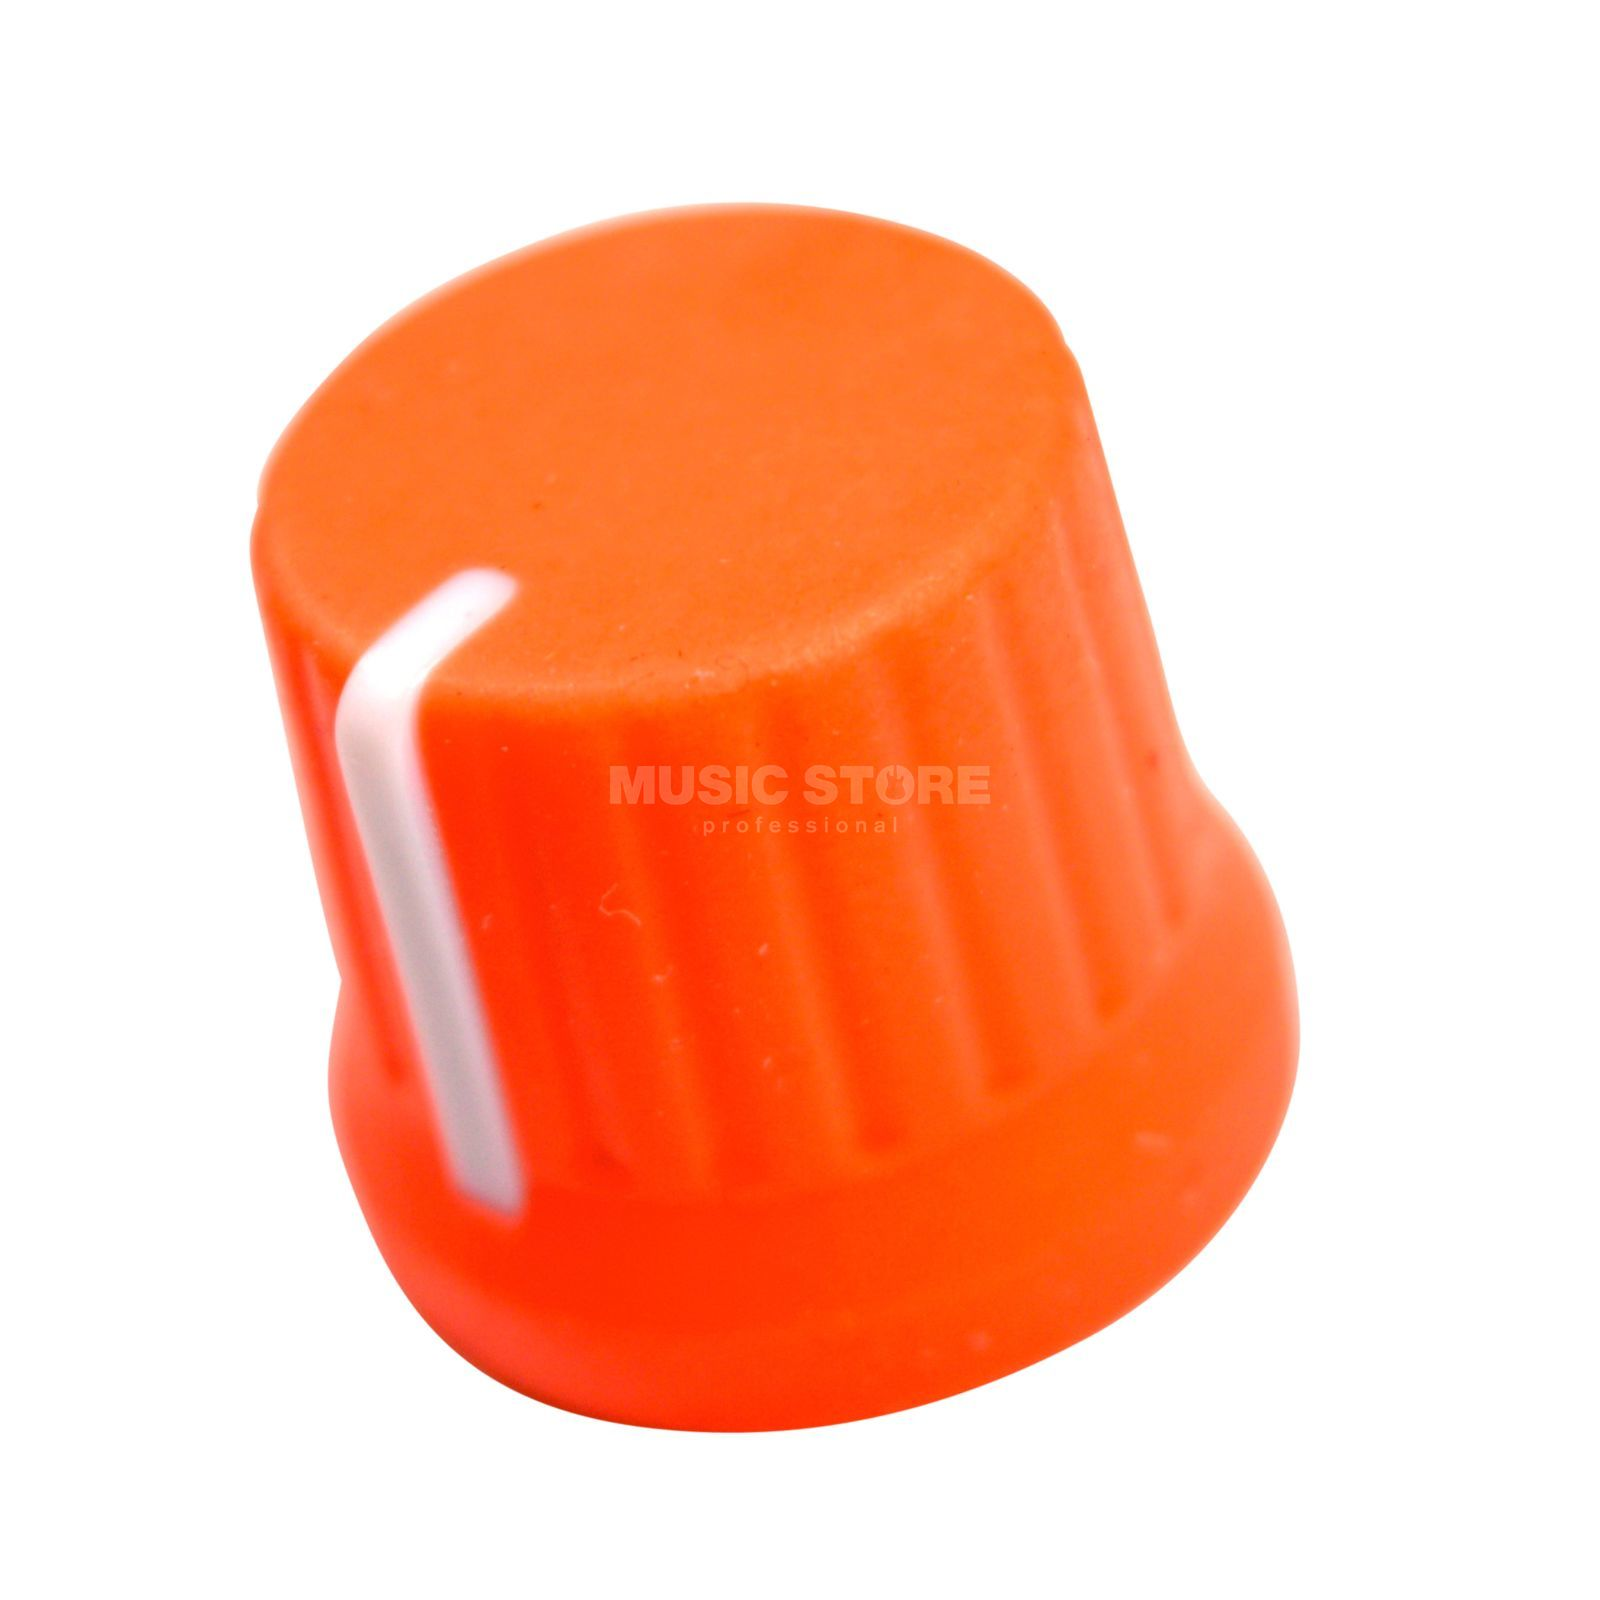 DJ TECHTOOLS Chroma Caps Fatty Knob neon orange Image du produit